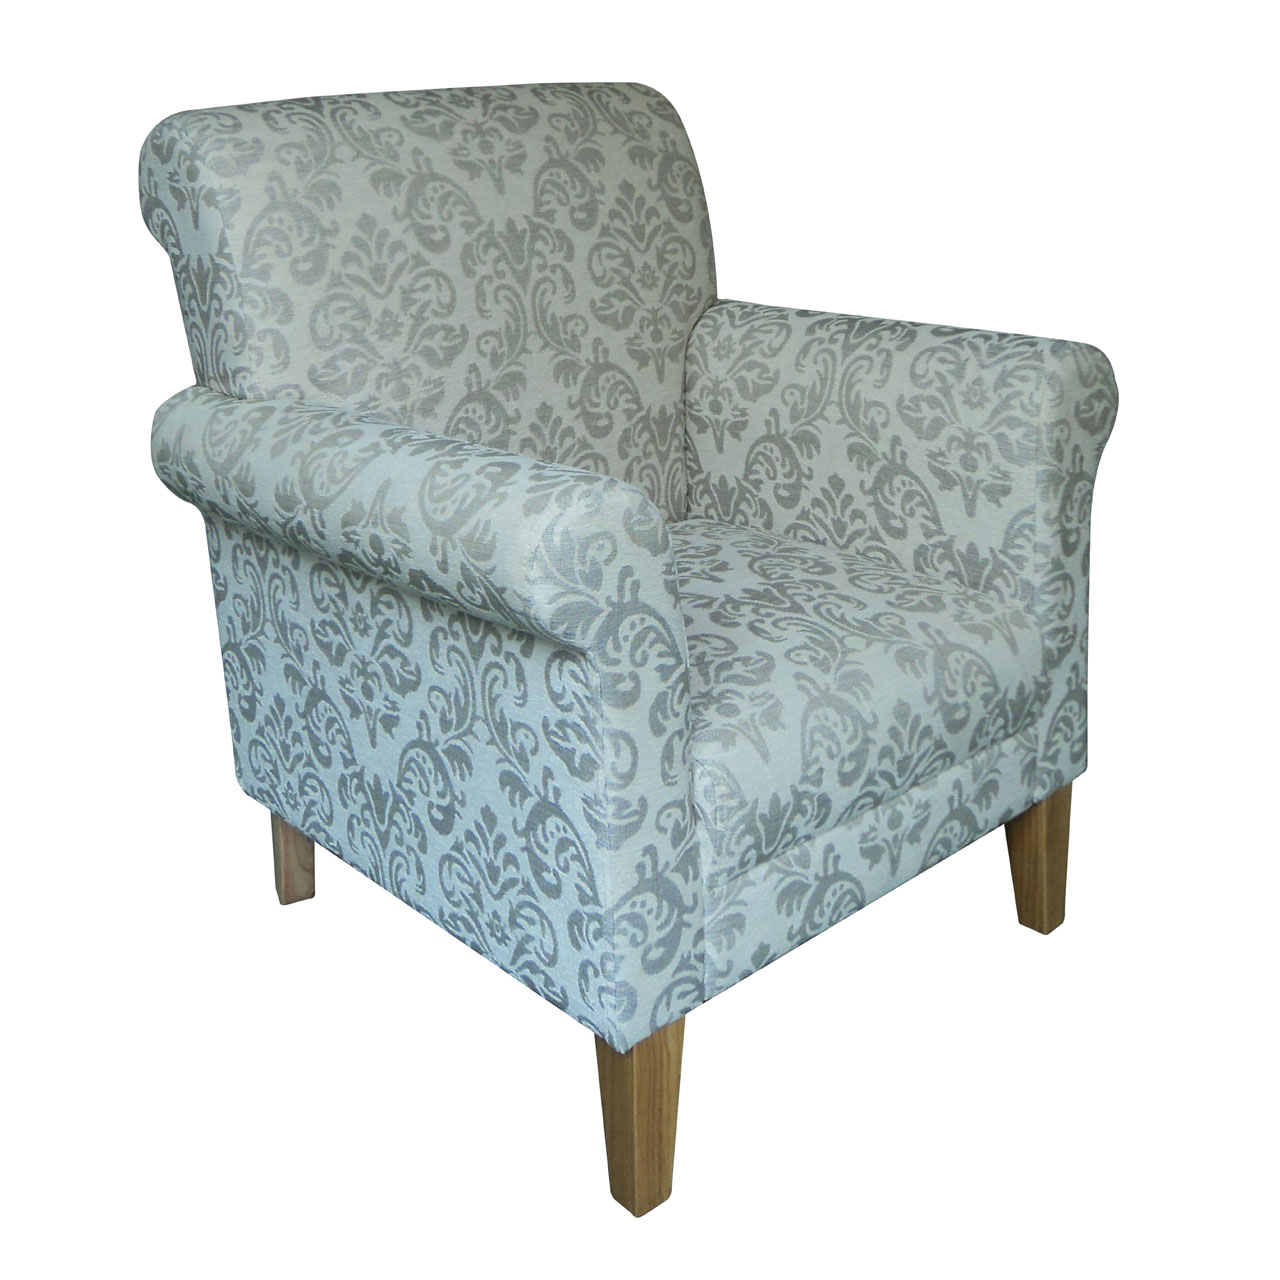 Damask Chair Details About Armchair Polyester Rubberwood Natural Damask Print Sofa Lounge Chair Furniture